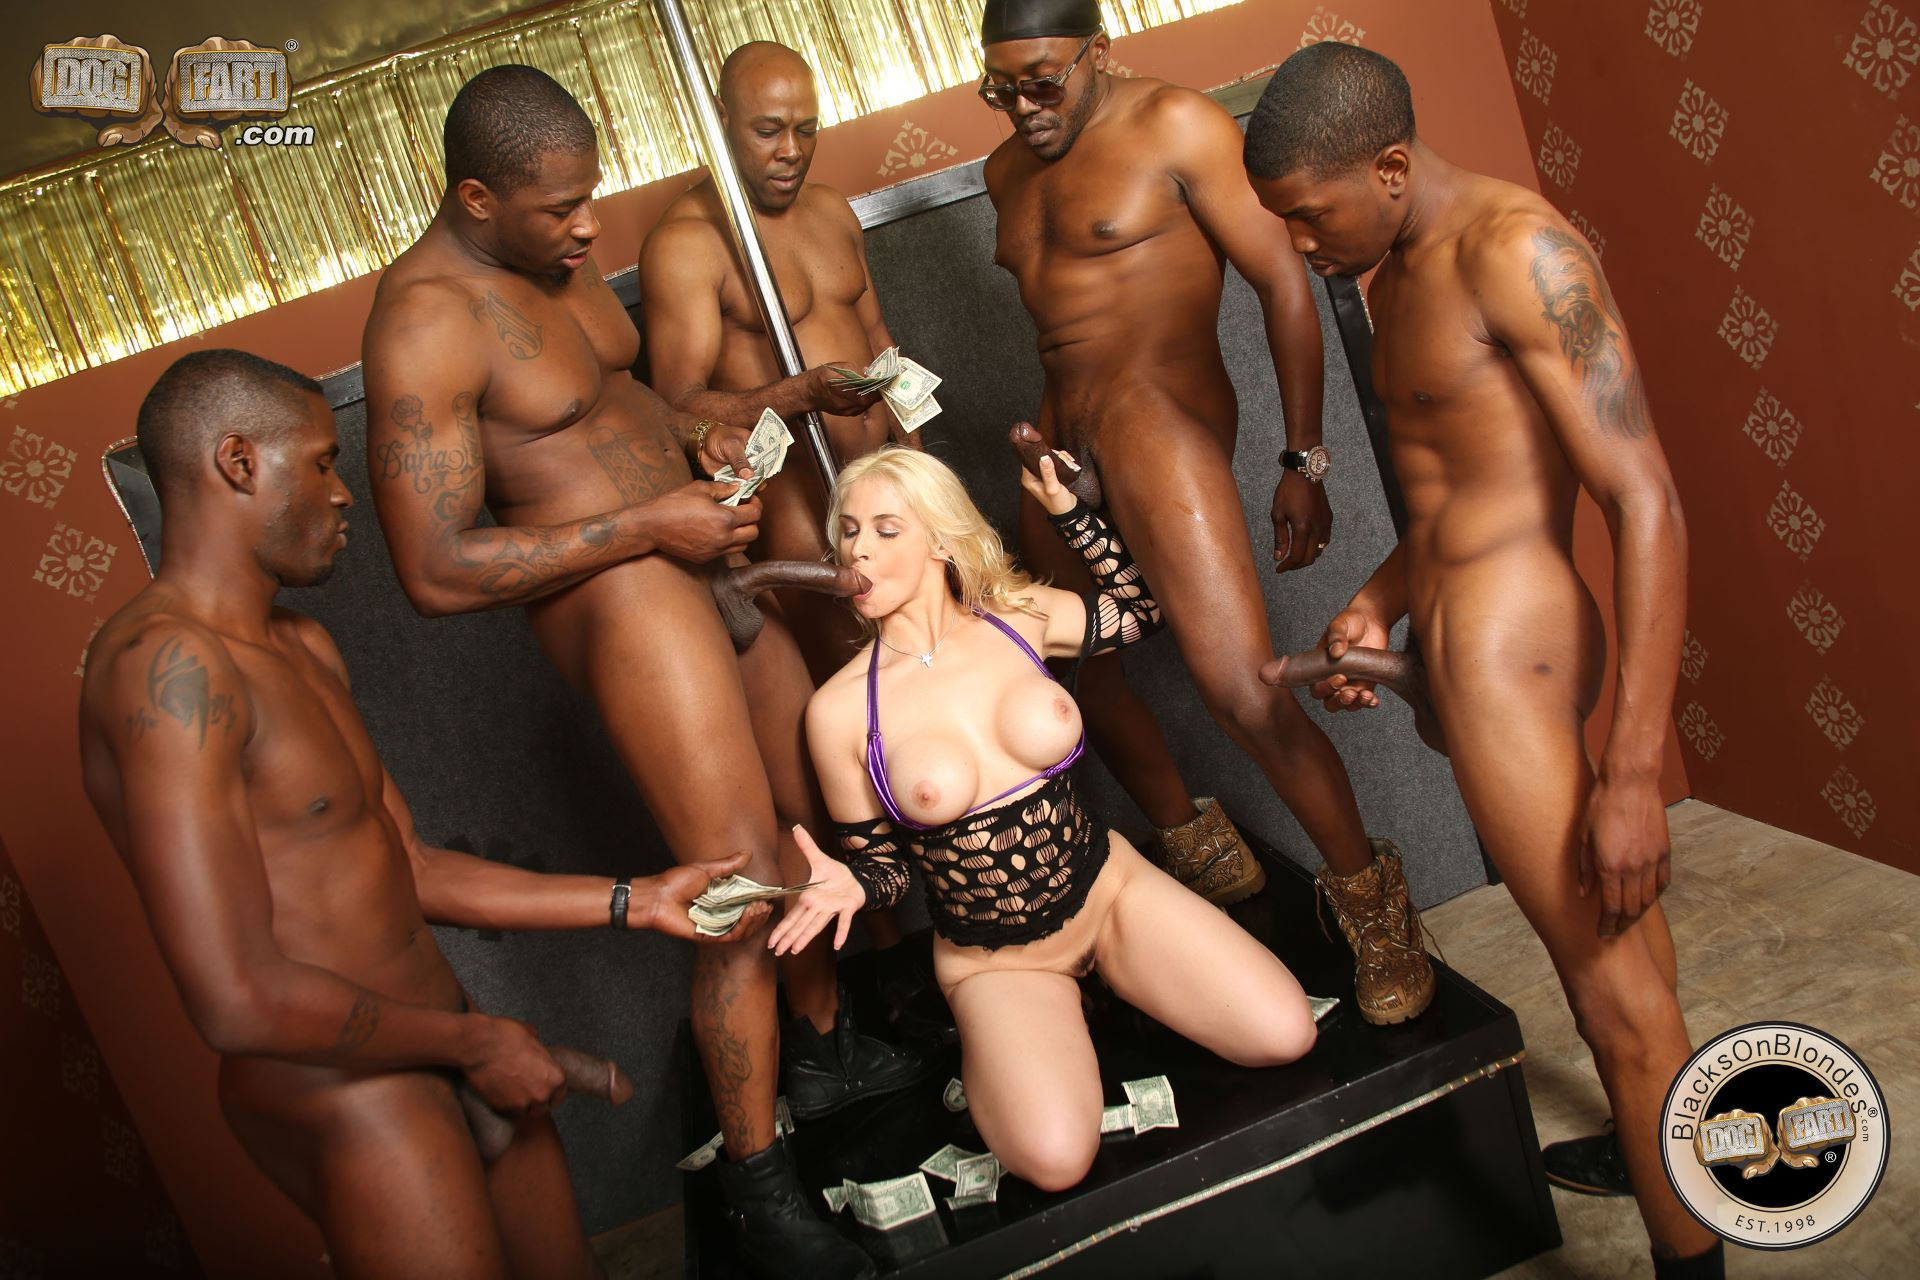 Try your by got husband interracial lover pregnant watch who wife reduction, experienced